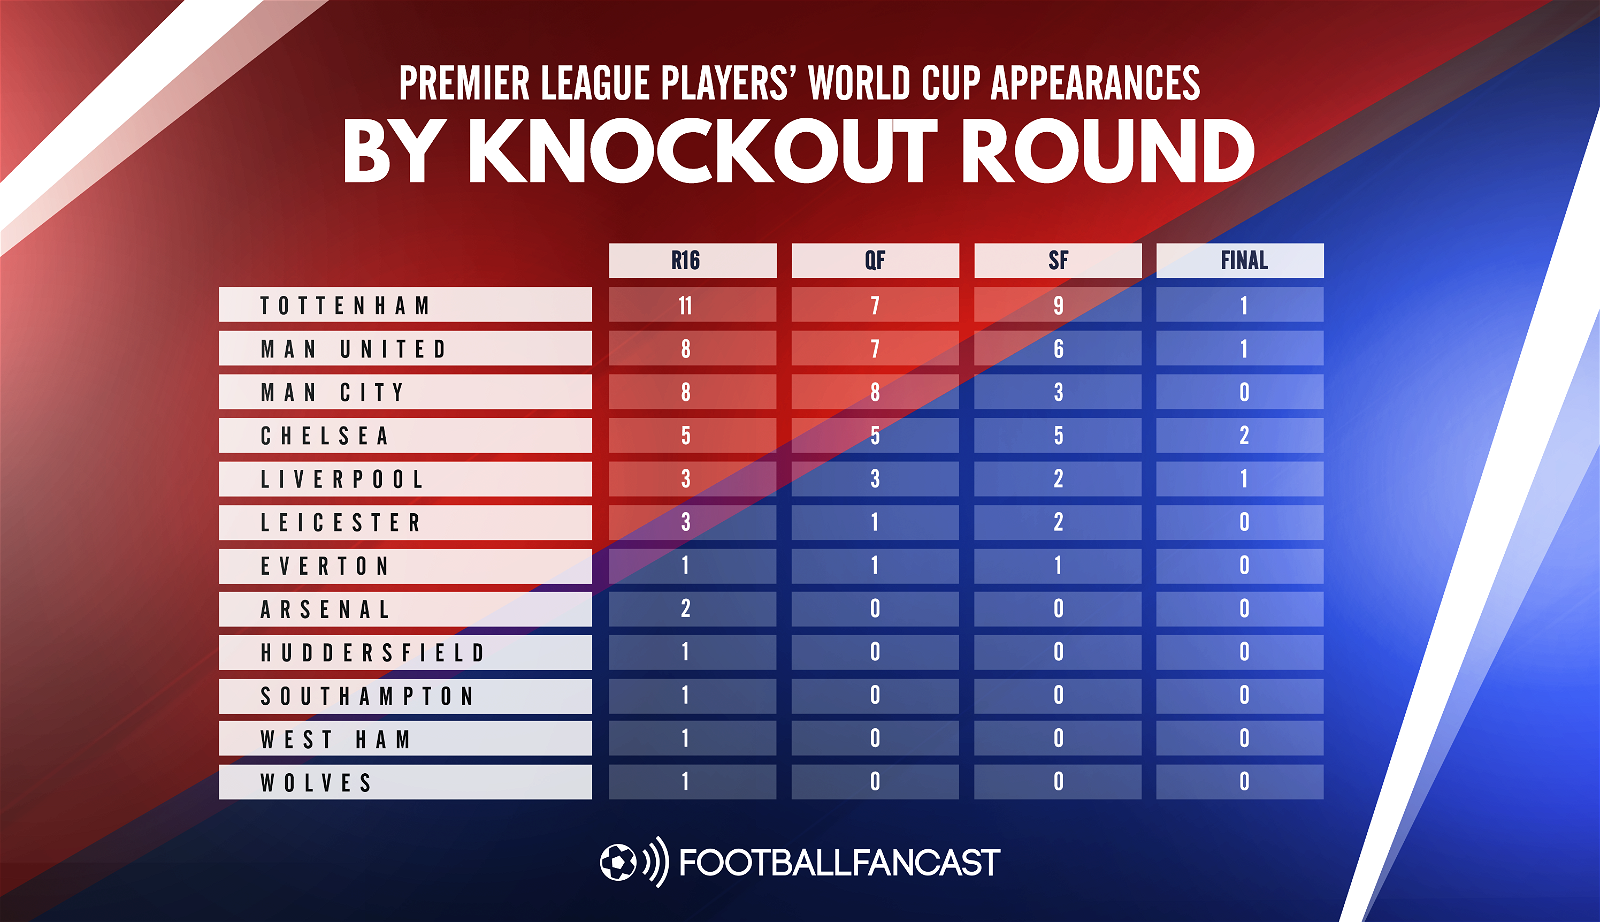 Premier League Players' World Cup appearances by knockout round